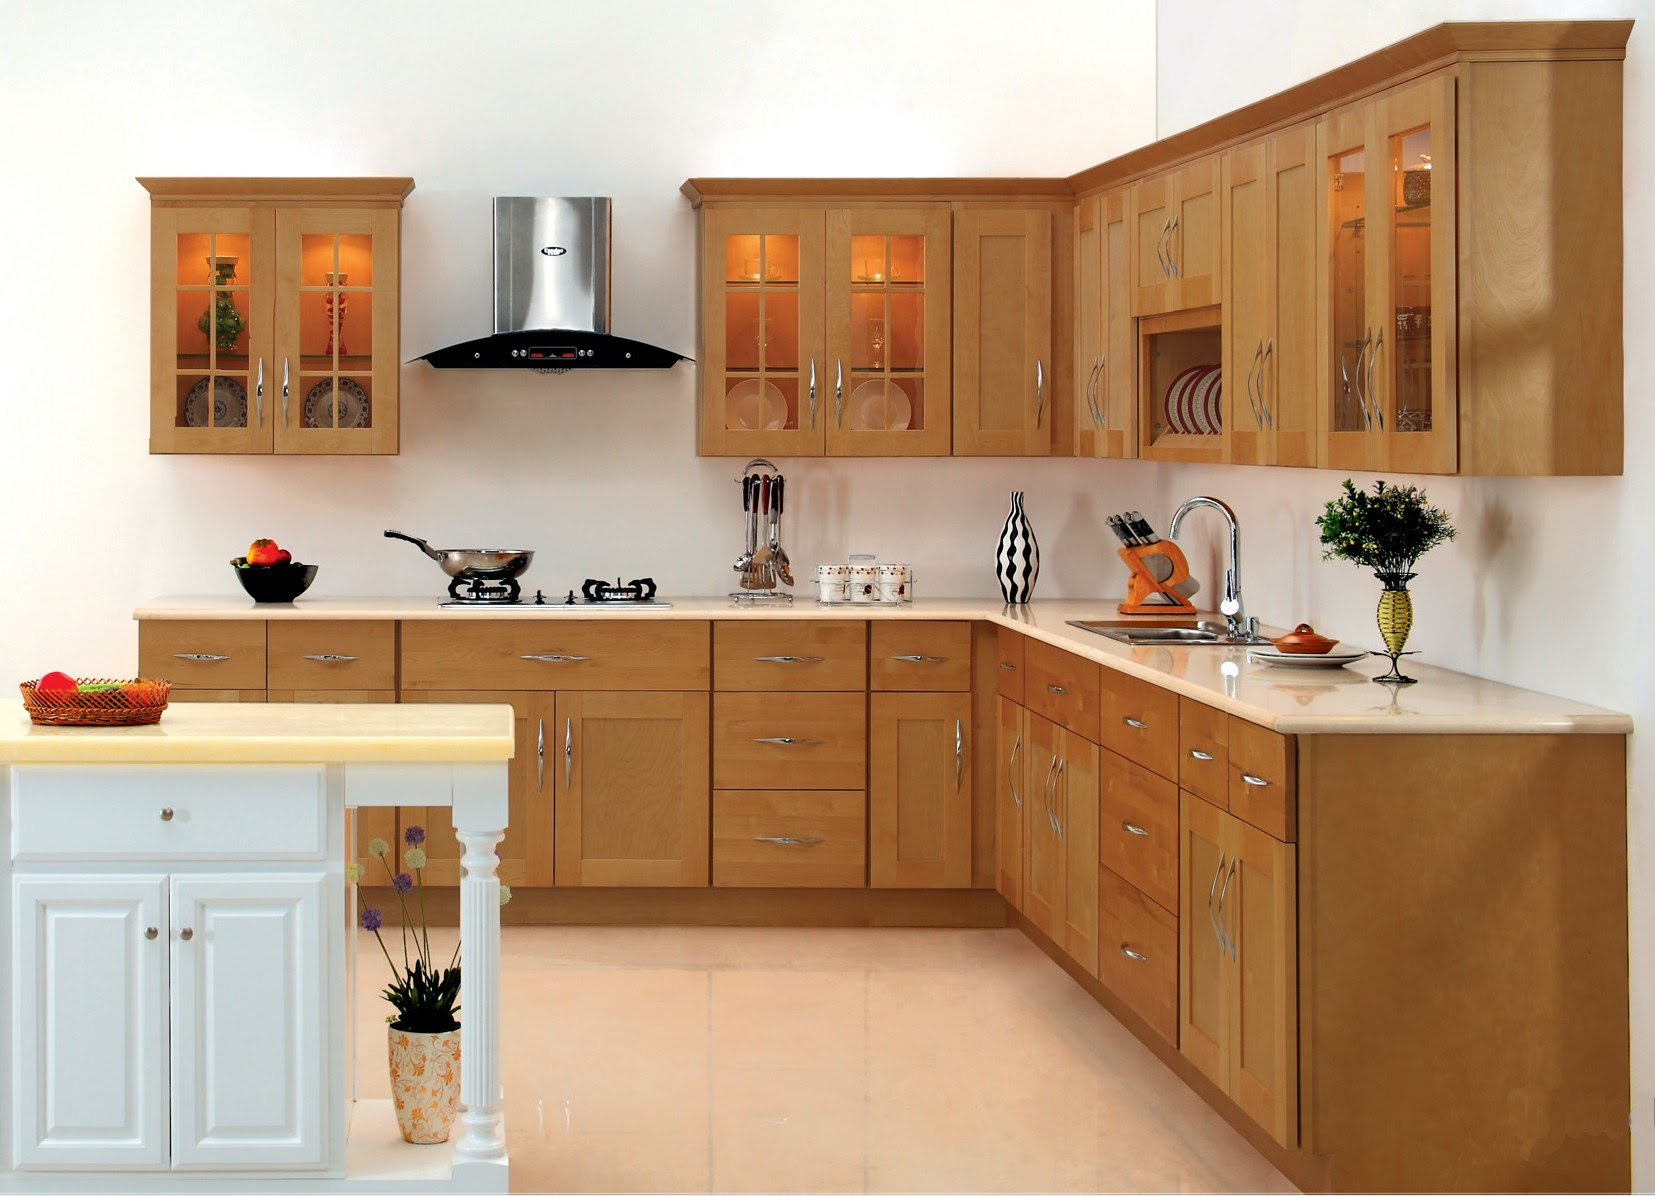 Thomasville Kitchen Cabinets Light Brown Wooden Detail Design Medium Wood Cherry Color Island Luxury With Ceramic White Color And White Walls Give The Impression Light Top Inspirations